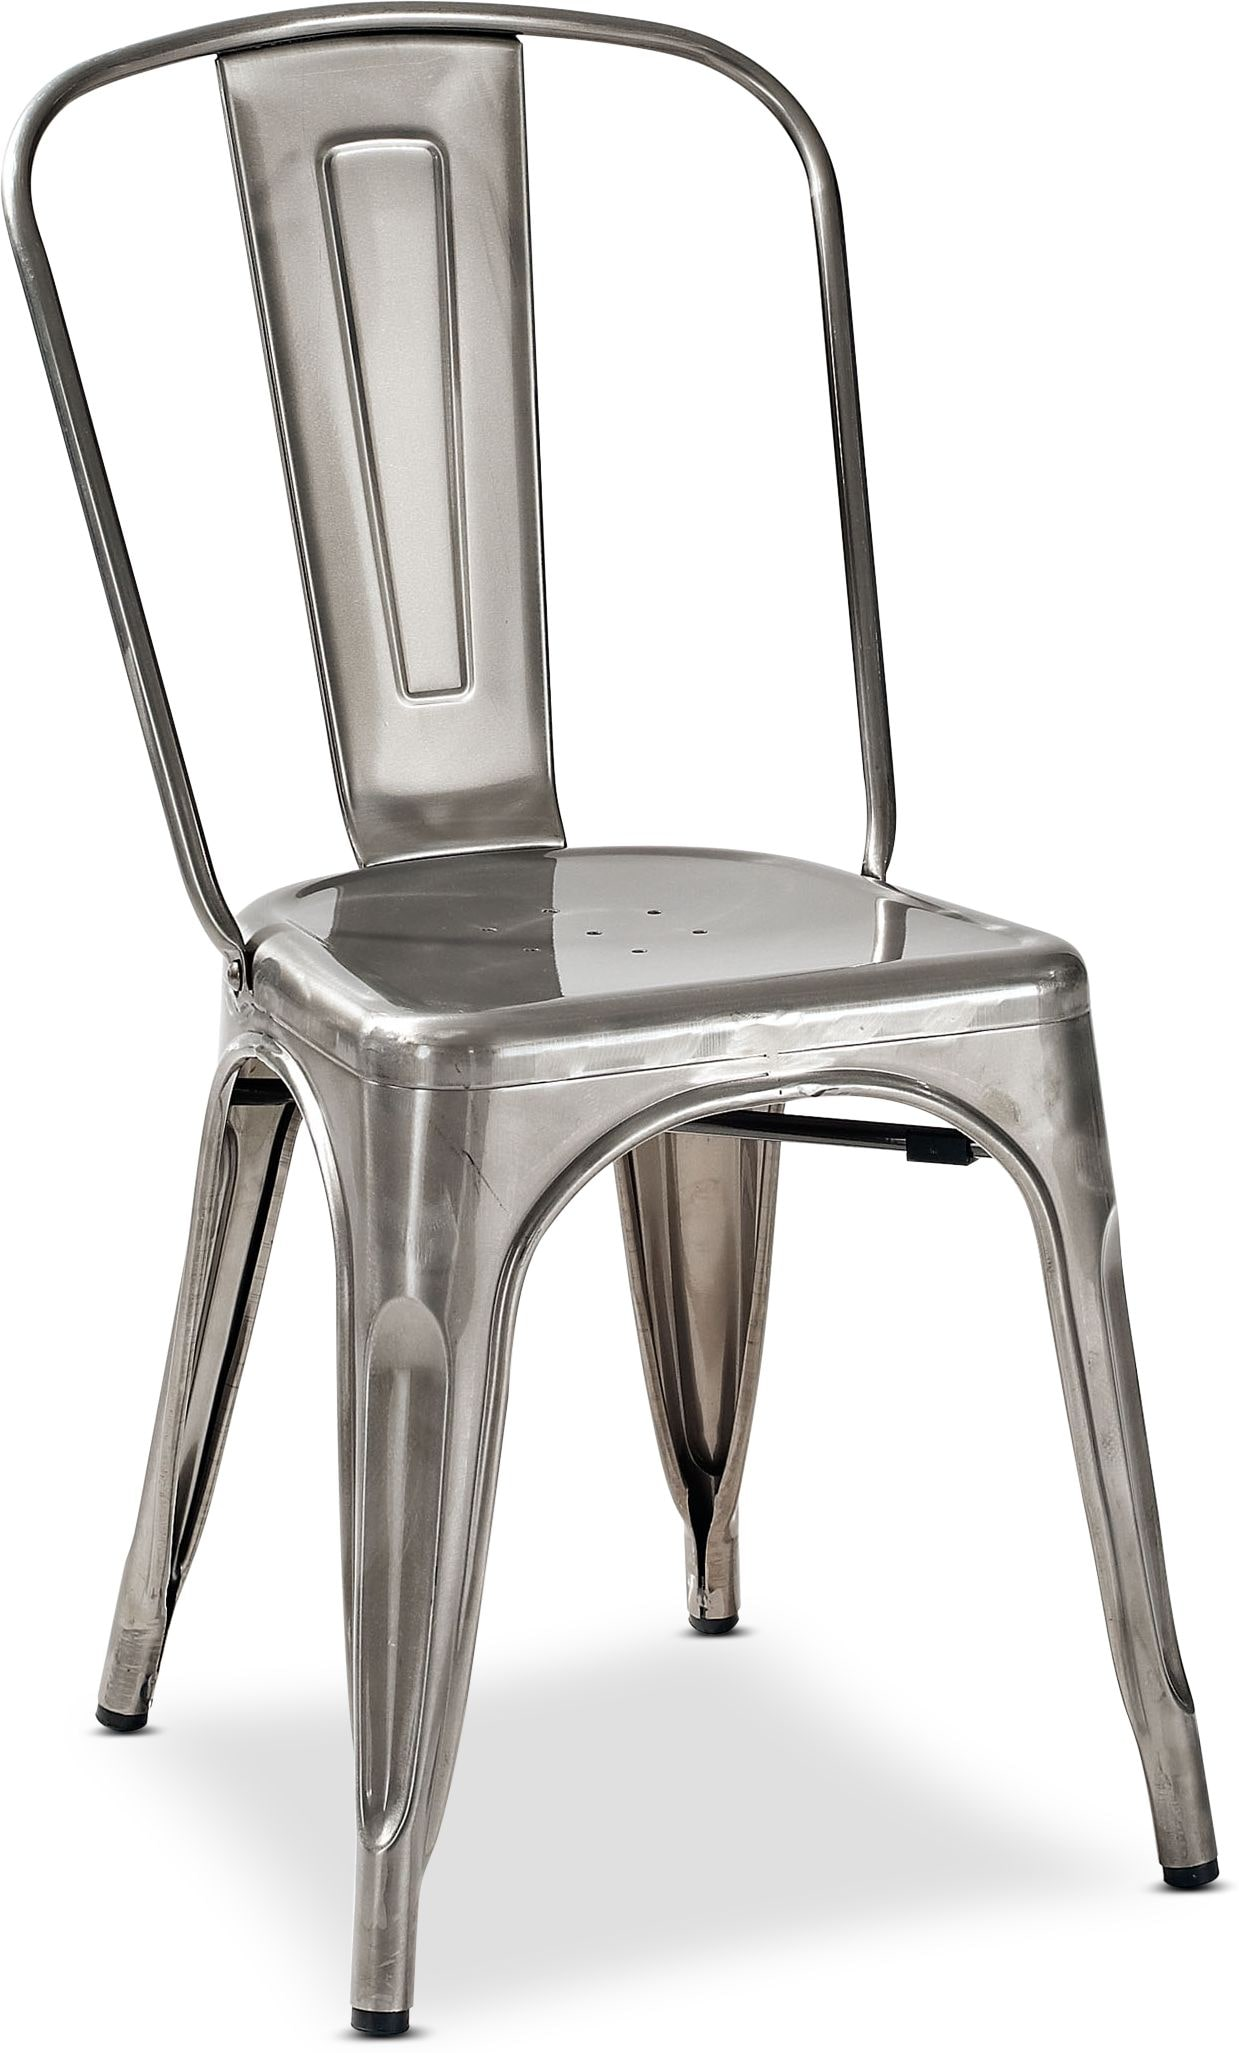 Dining Room Furniture - Oliver Set of 2 Dining Chairs